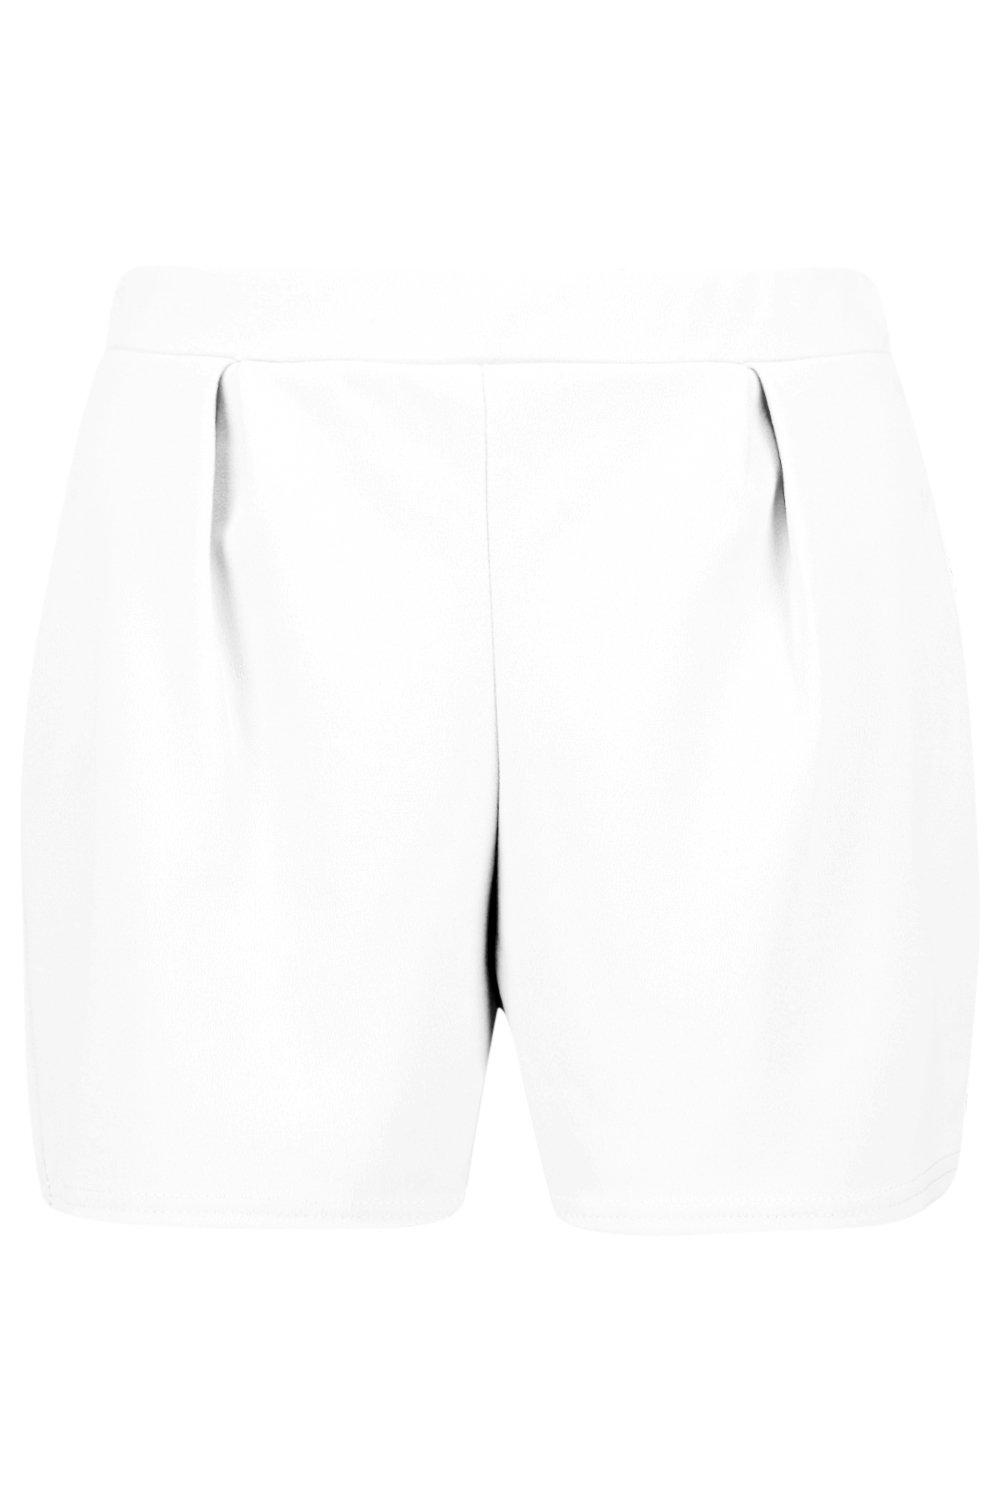 ivory ivory Casual ivory Smart Casual Shorts Smart Shorts ivory Casual Shorts Casual Shorts Smart Smart Smart f1aAPq